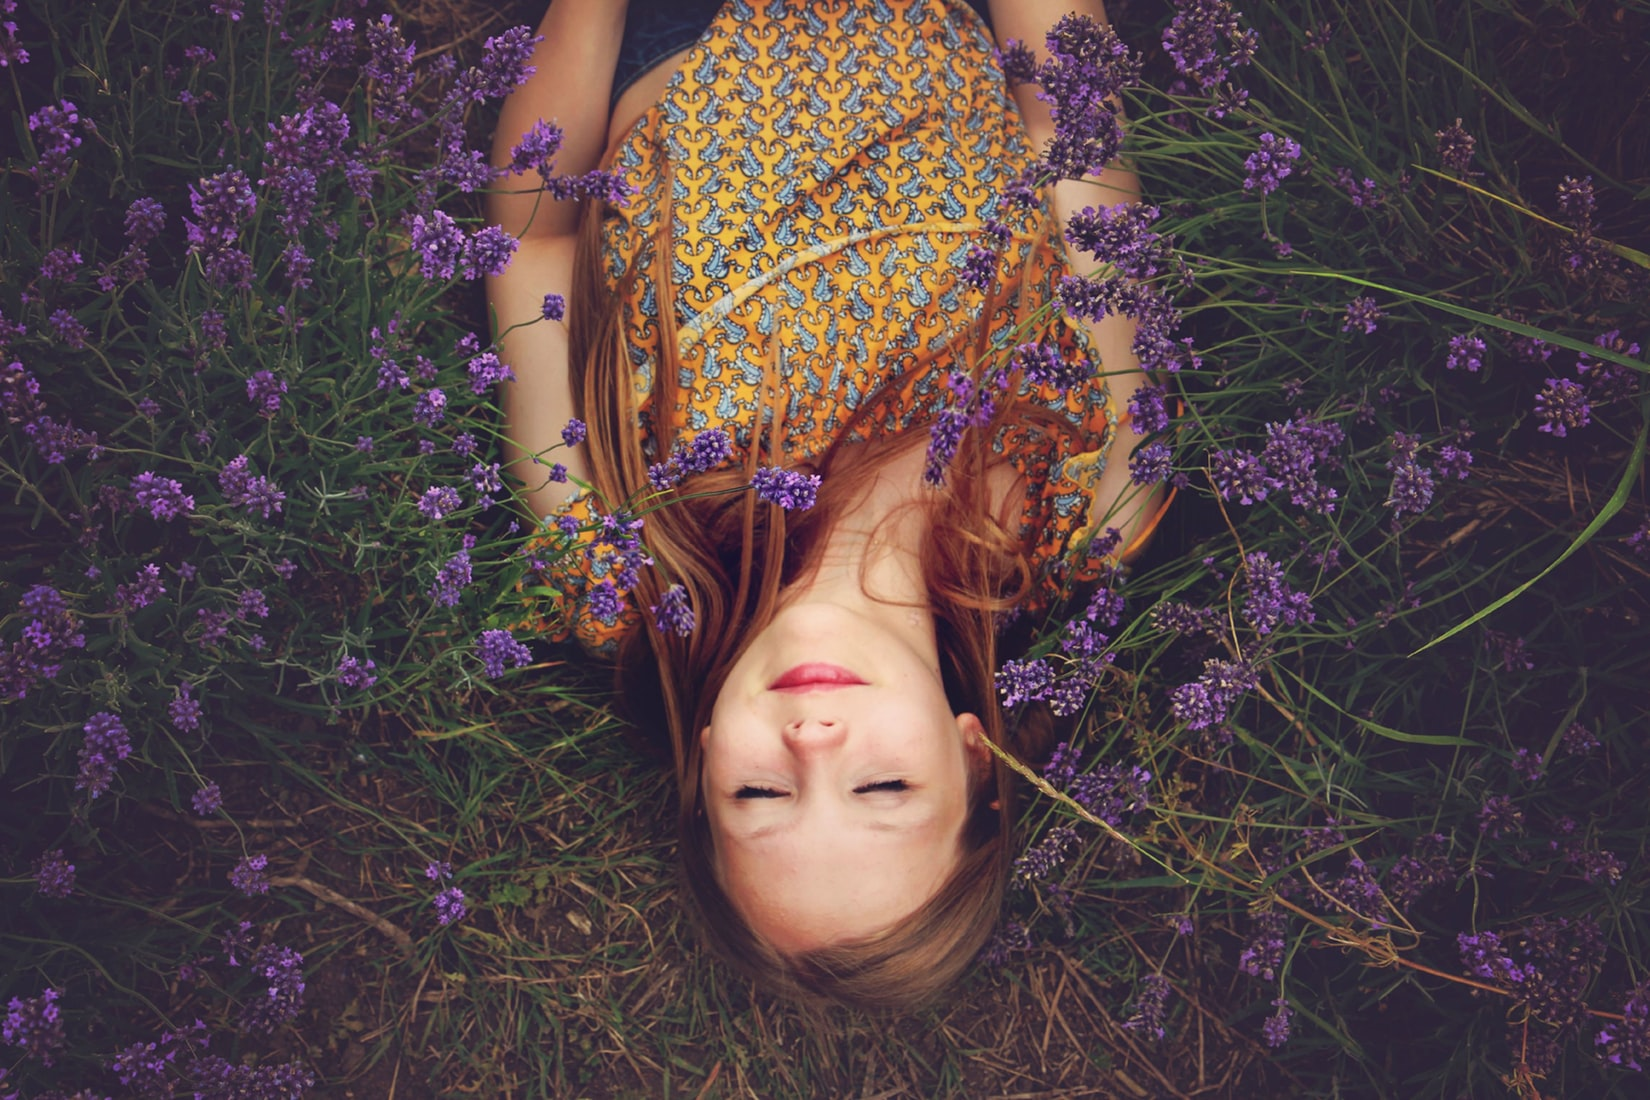 Woman in yellow top sleeping in nature next to lavenders